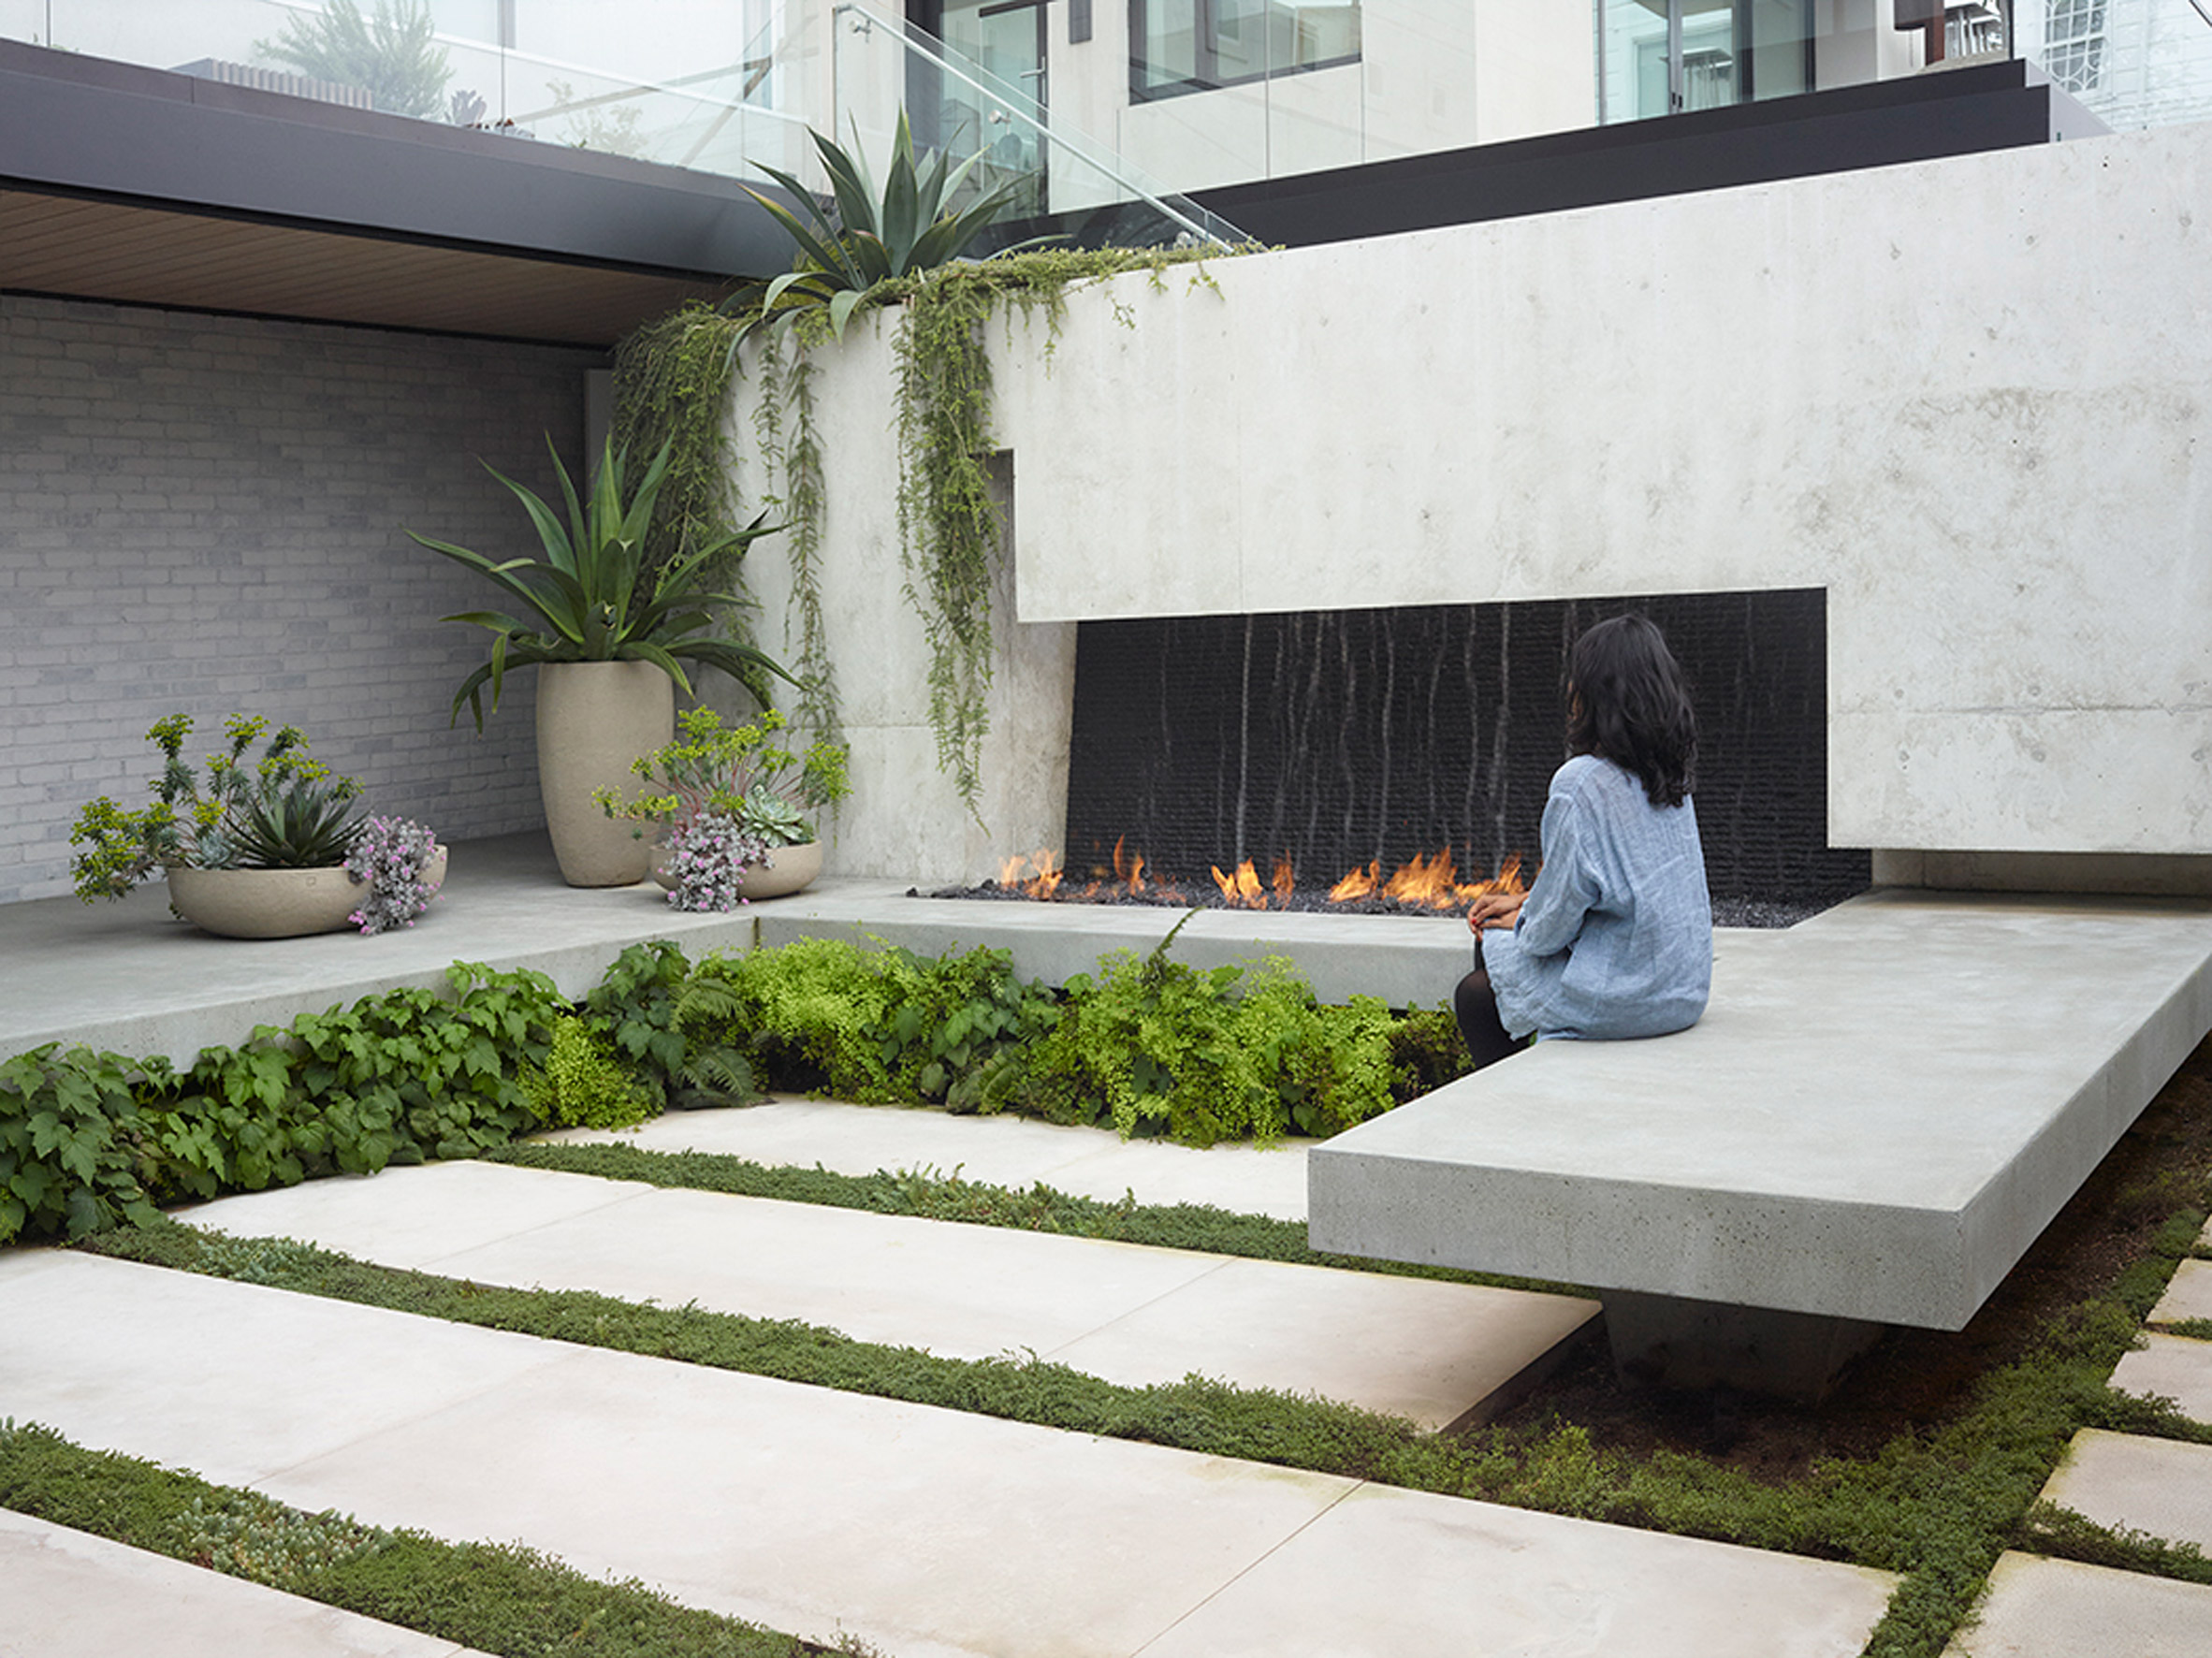 Outdoor fireplace at home in USA